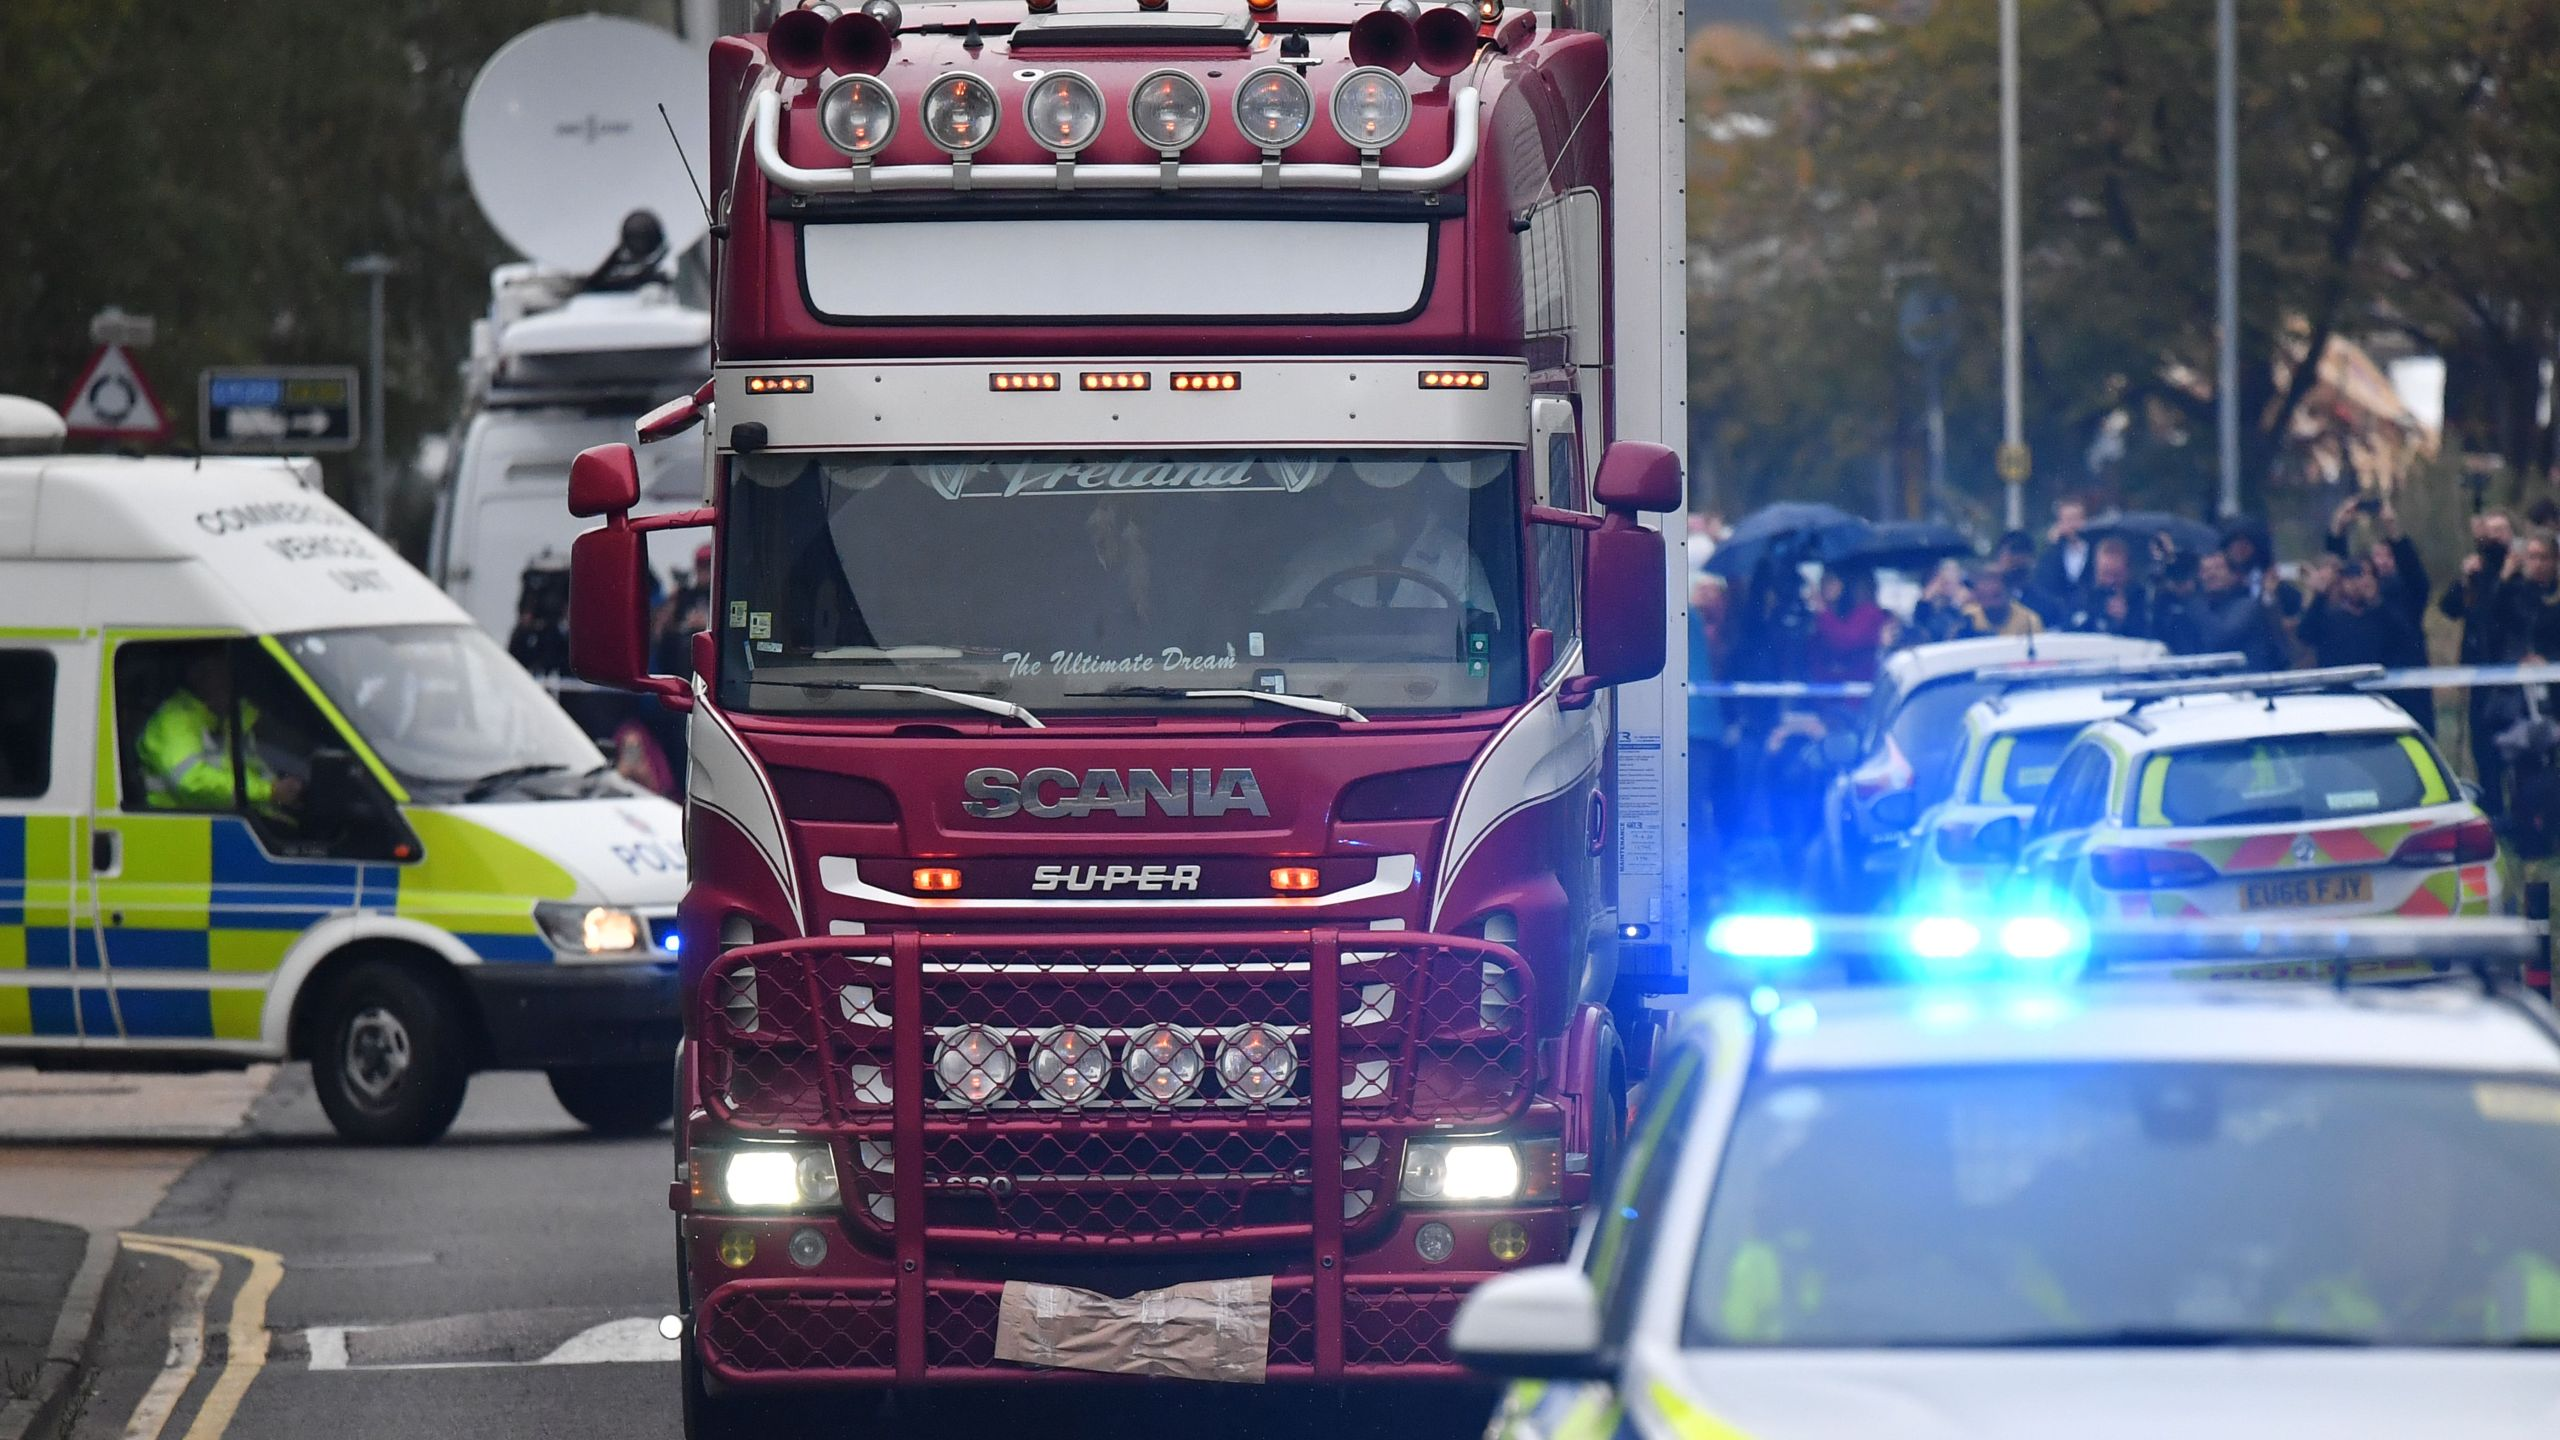 Police officers drive away a lorry in which 39 dead bodies were discovered, sparking a murder investigation at Waterglade Industrial Park in Grays, east of London, on Oct. 23, 2019. (Credit: Ben Stansall/AFP via Getty Images)